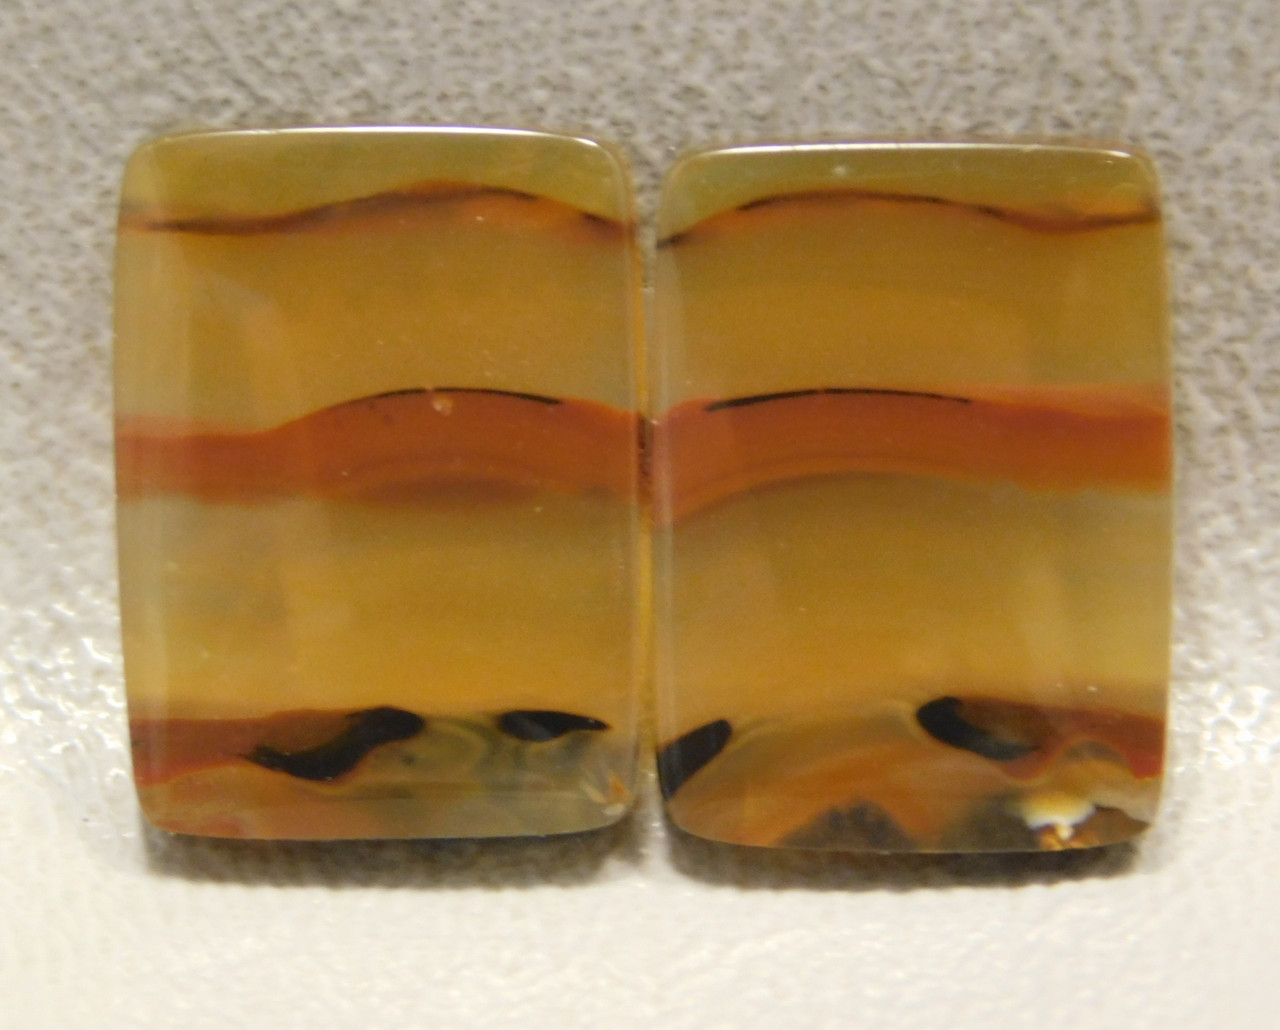 Brazilian Agate Matched Pair Cabochons 18 mm 13 mm Rectangle #21